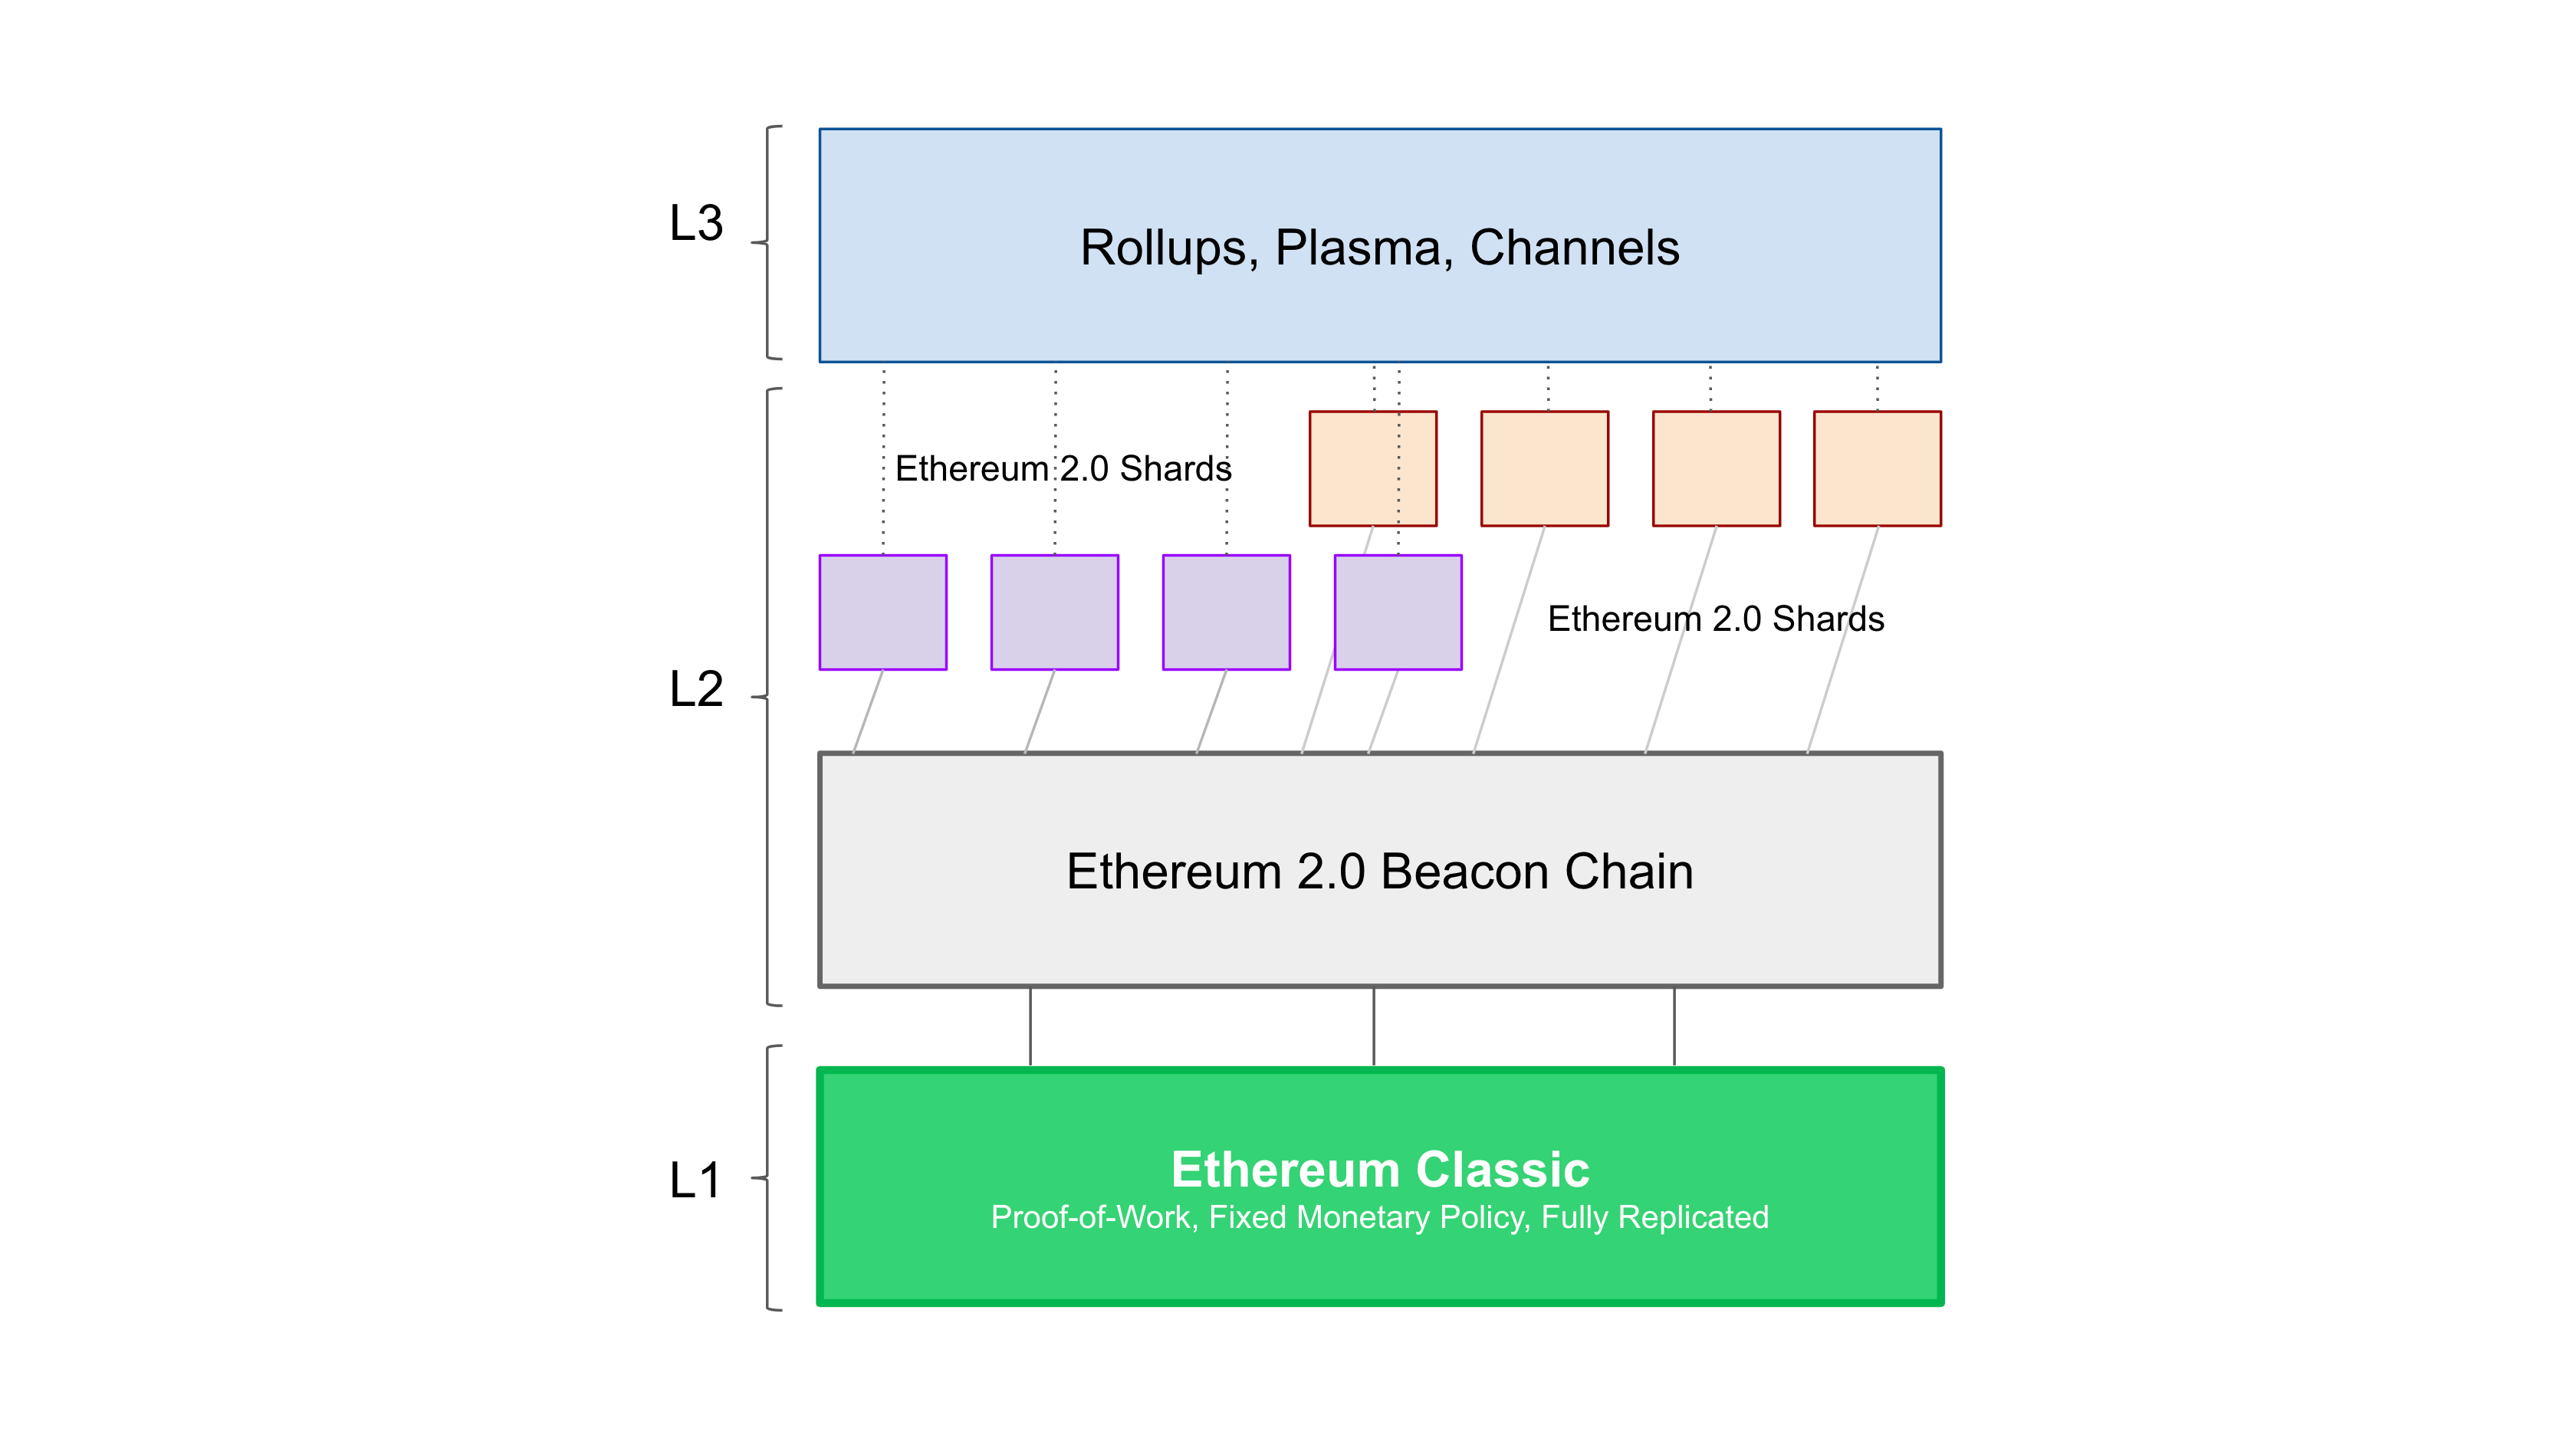 Model for an Ethereum and Ethereum Classic Collaboration